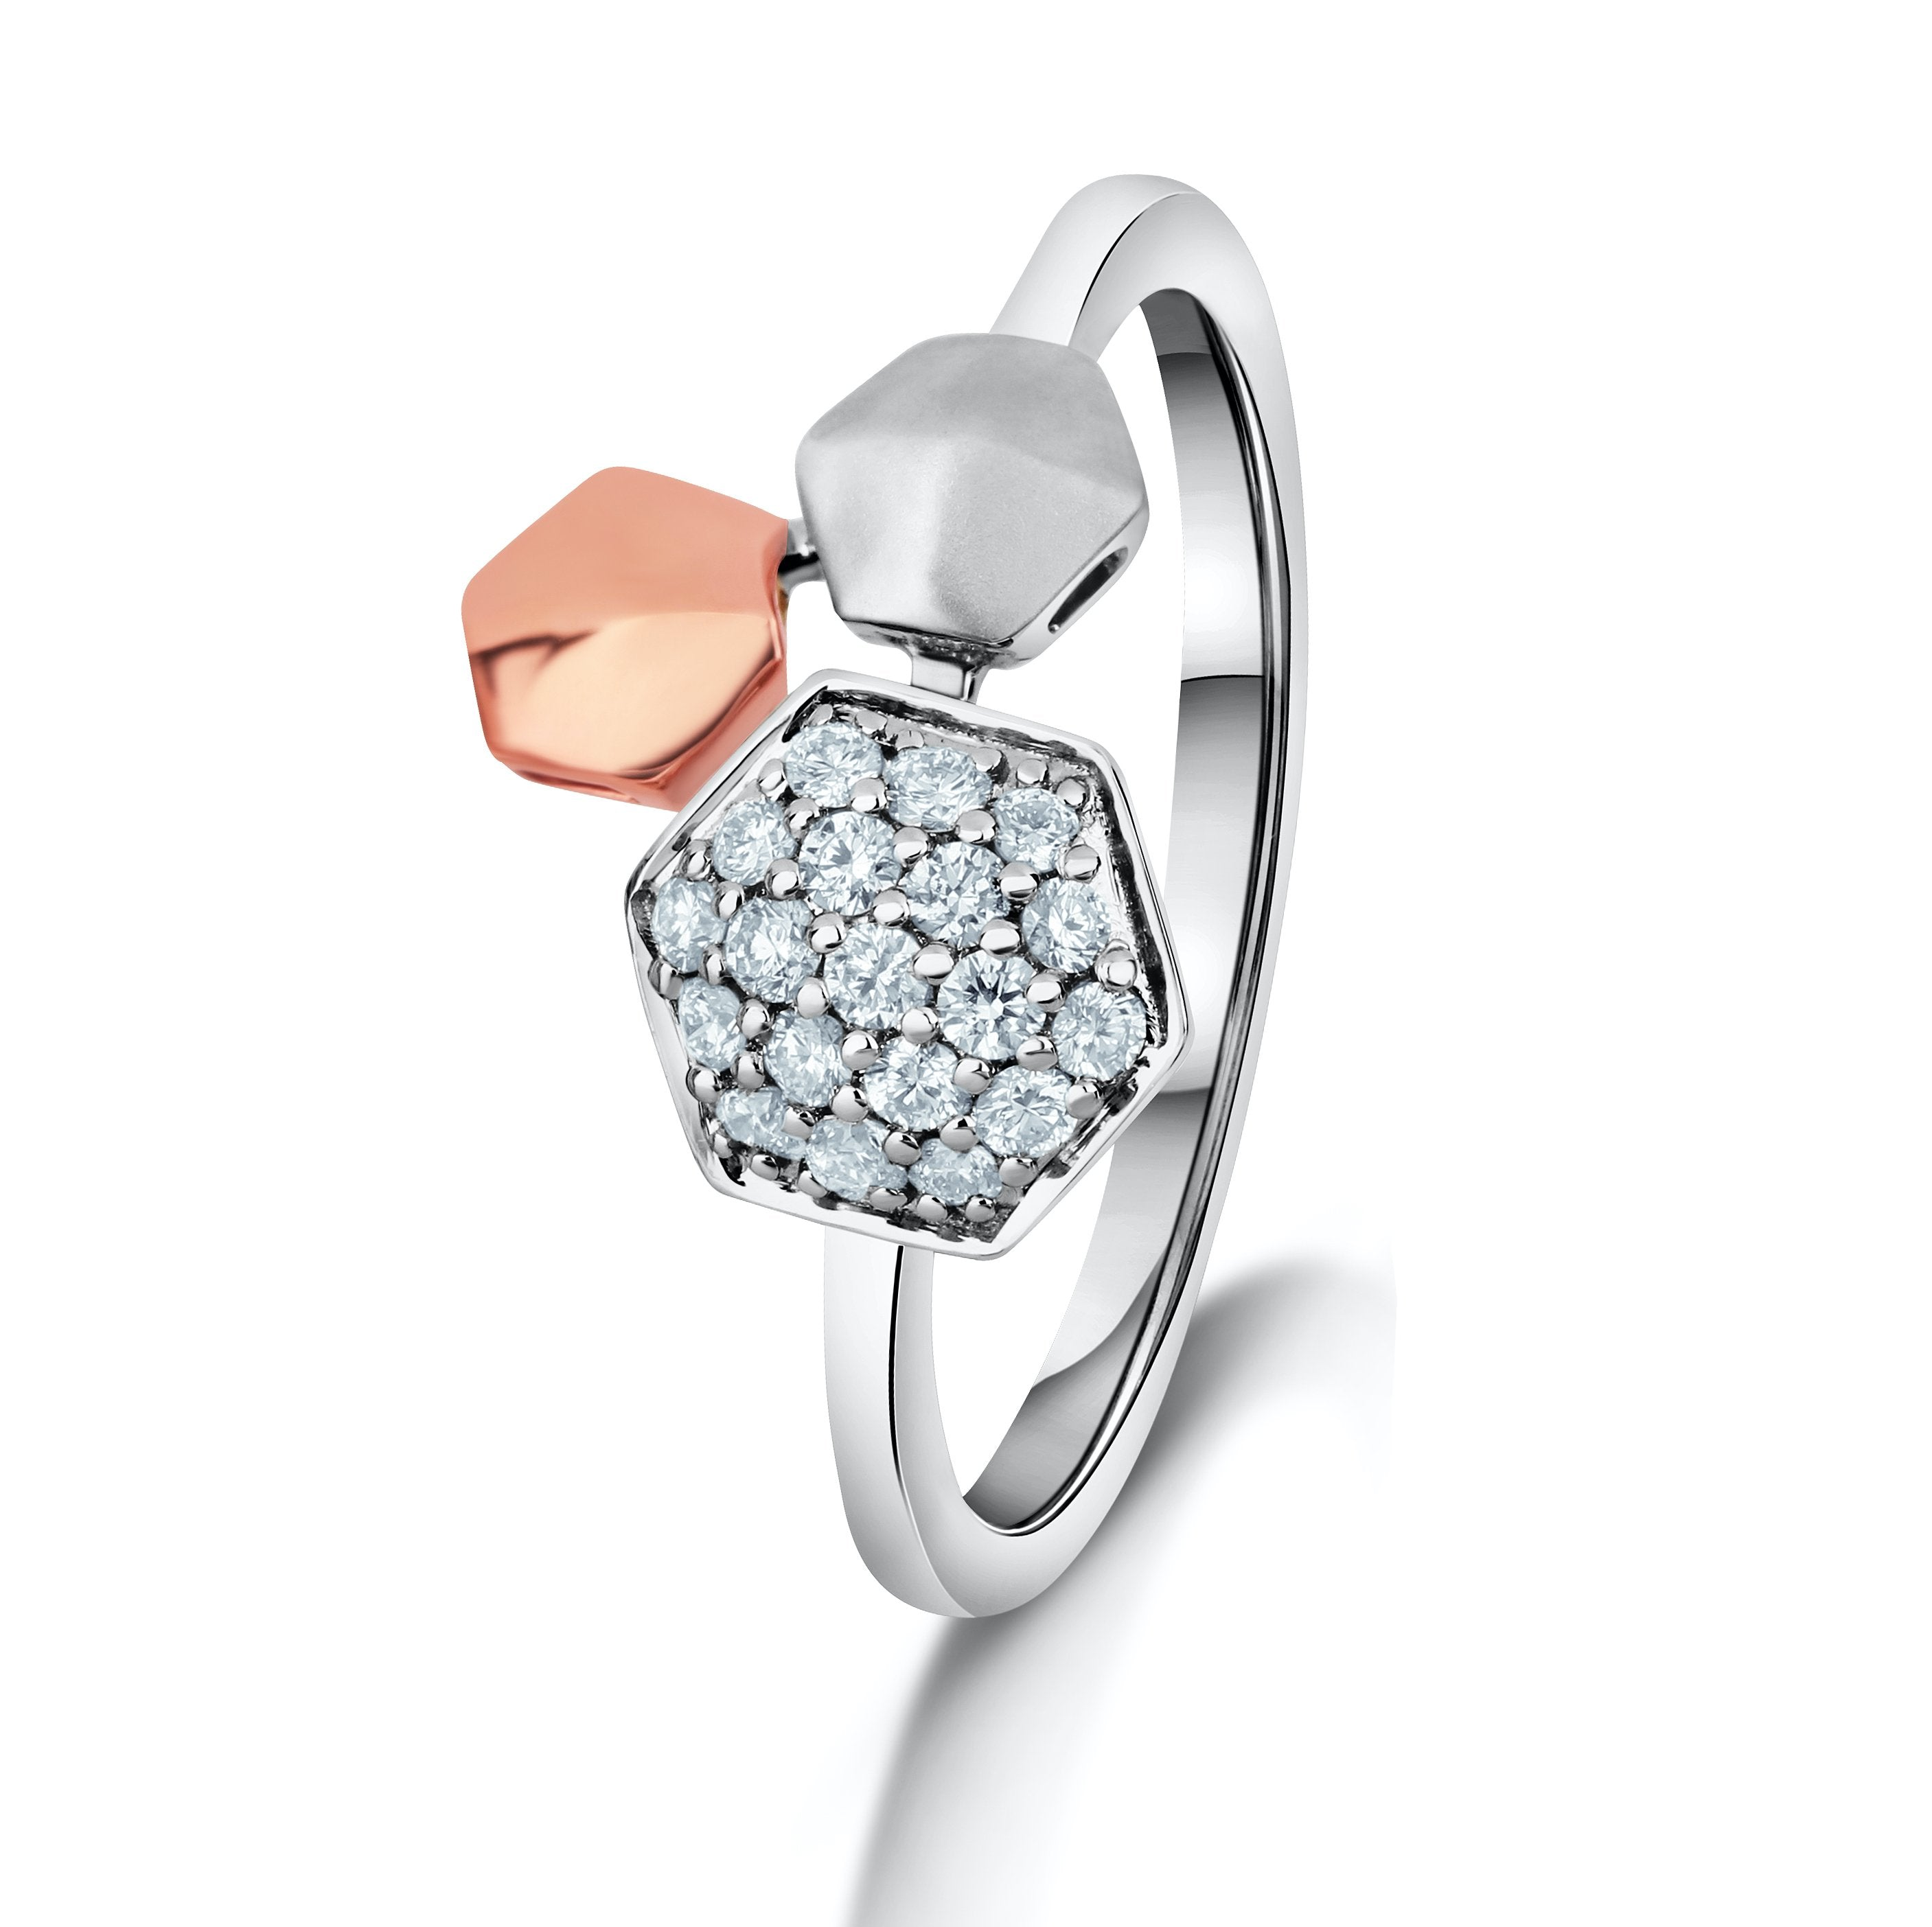 Hats off to Women | Hexagonal Platinum & Rose Gold Ring for Women with Diamonds JL PT 987